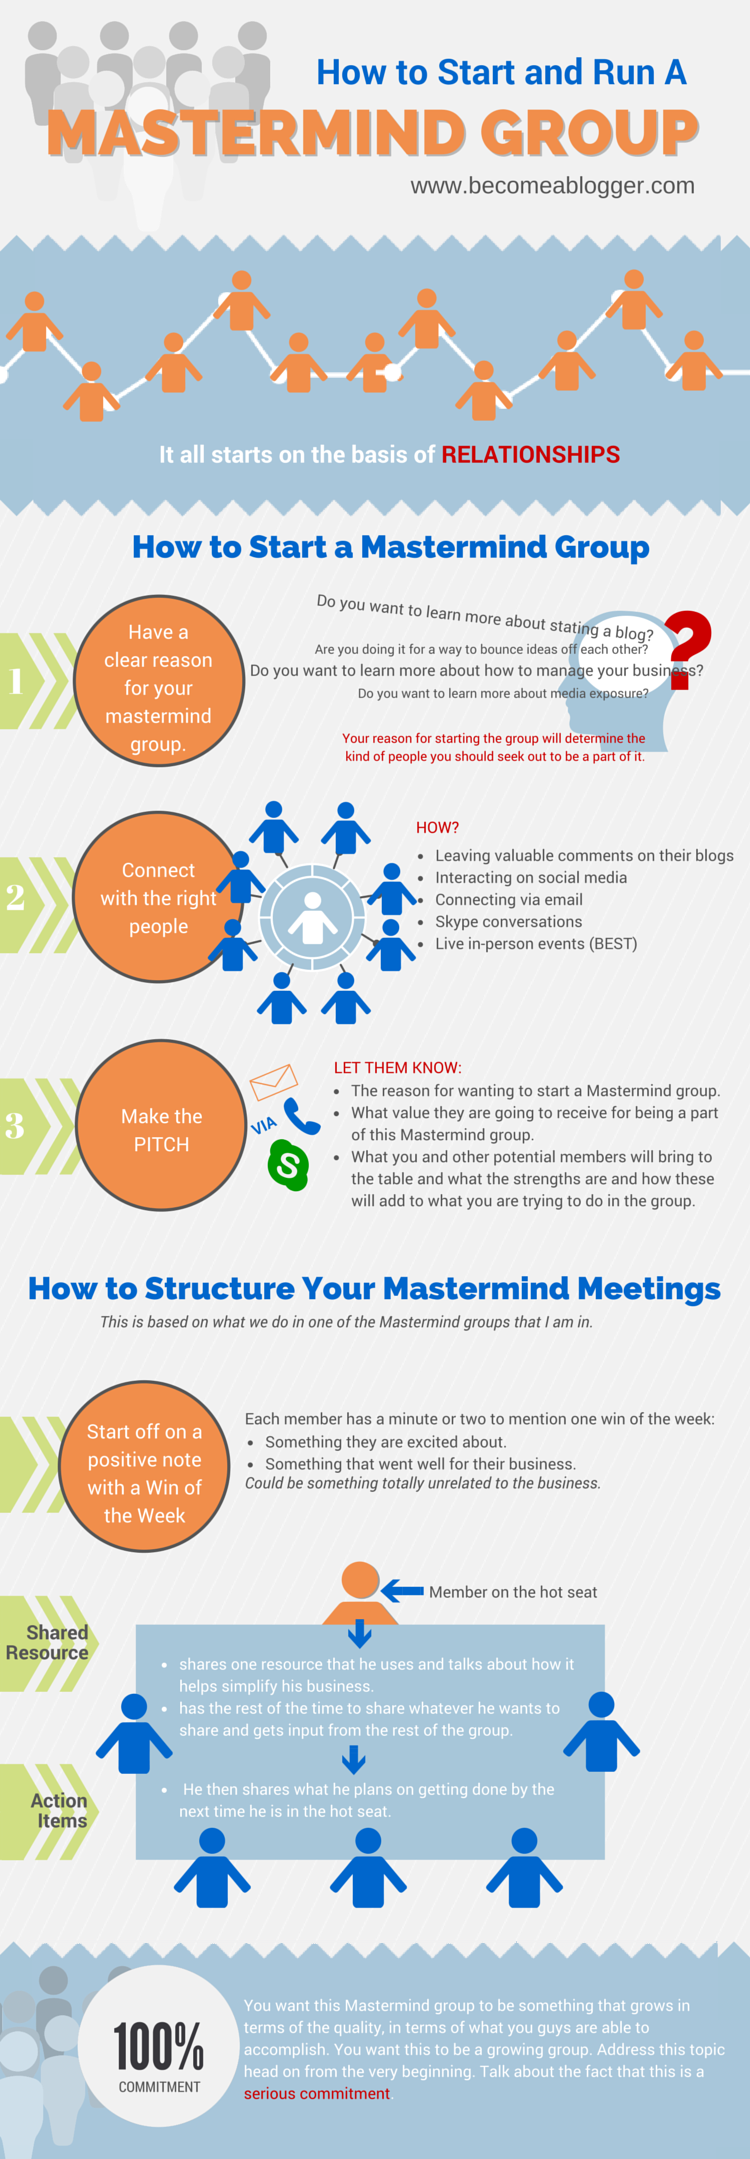 213_Mastermind-Group_Infographic